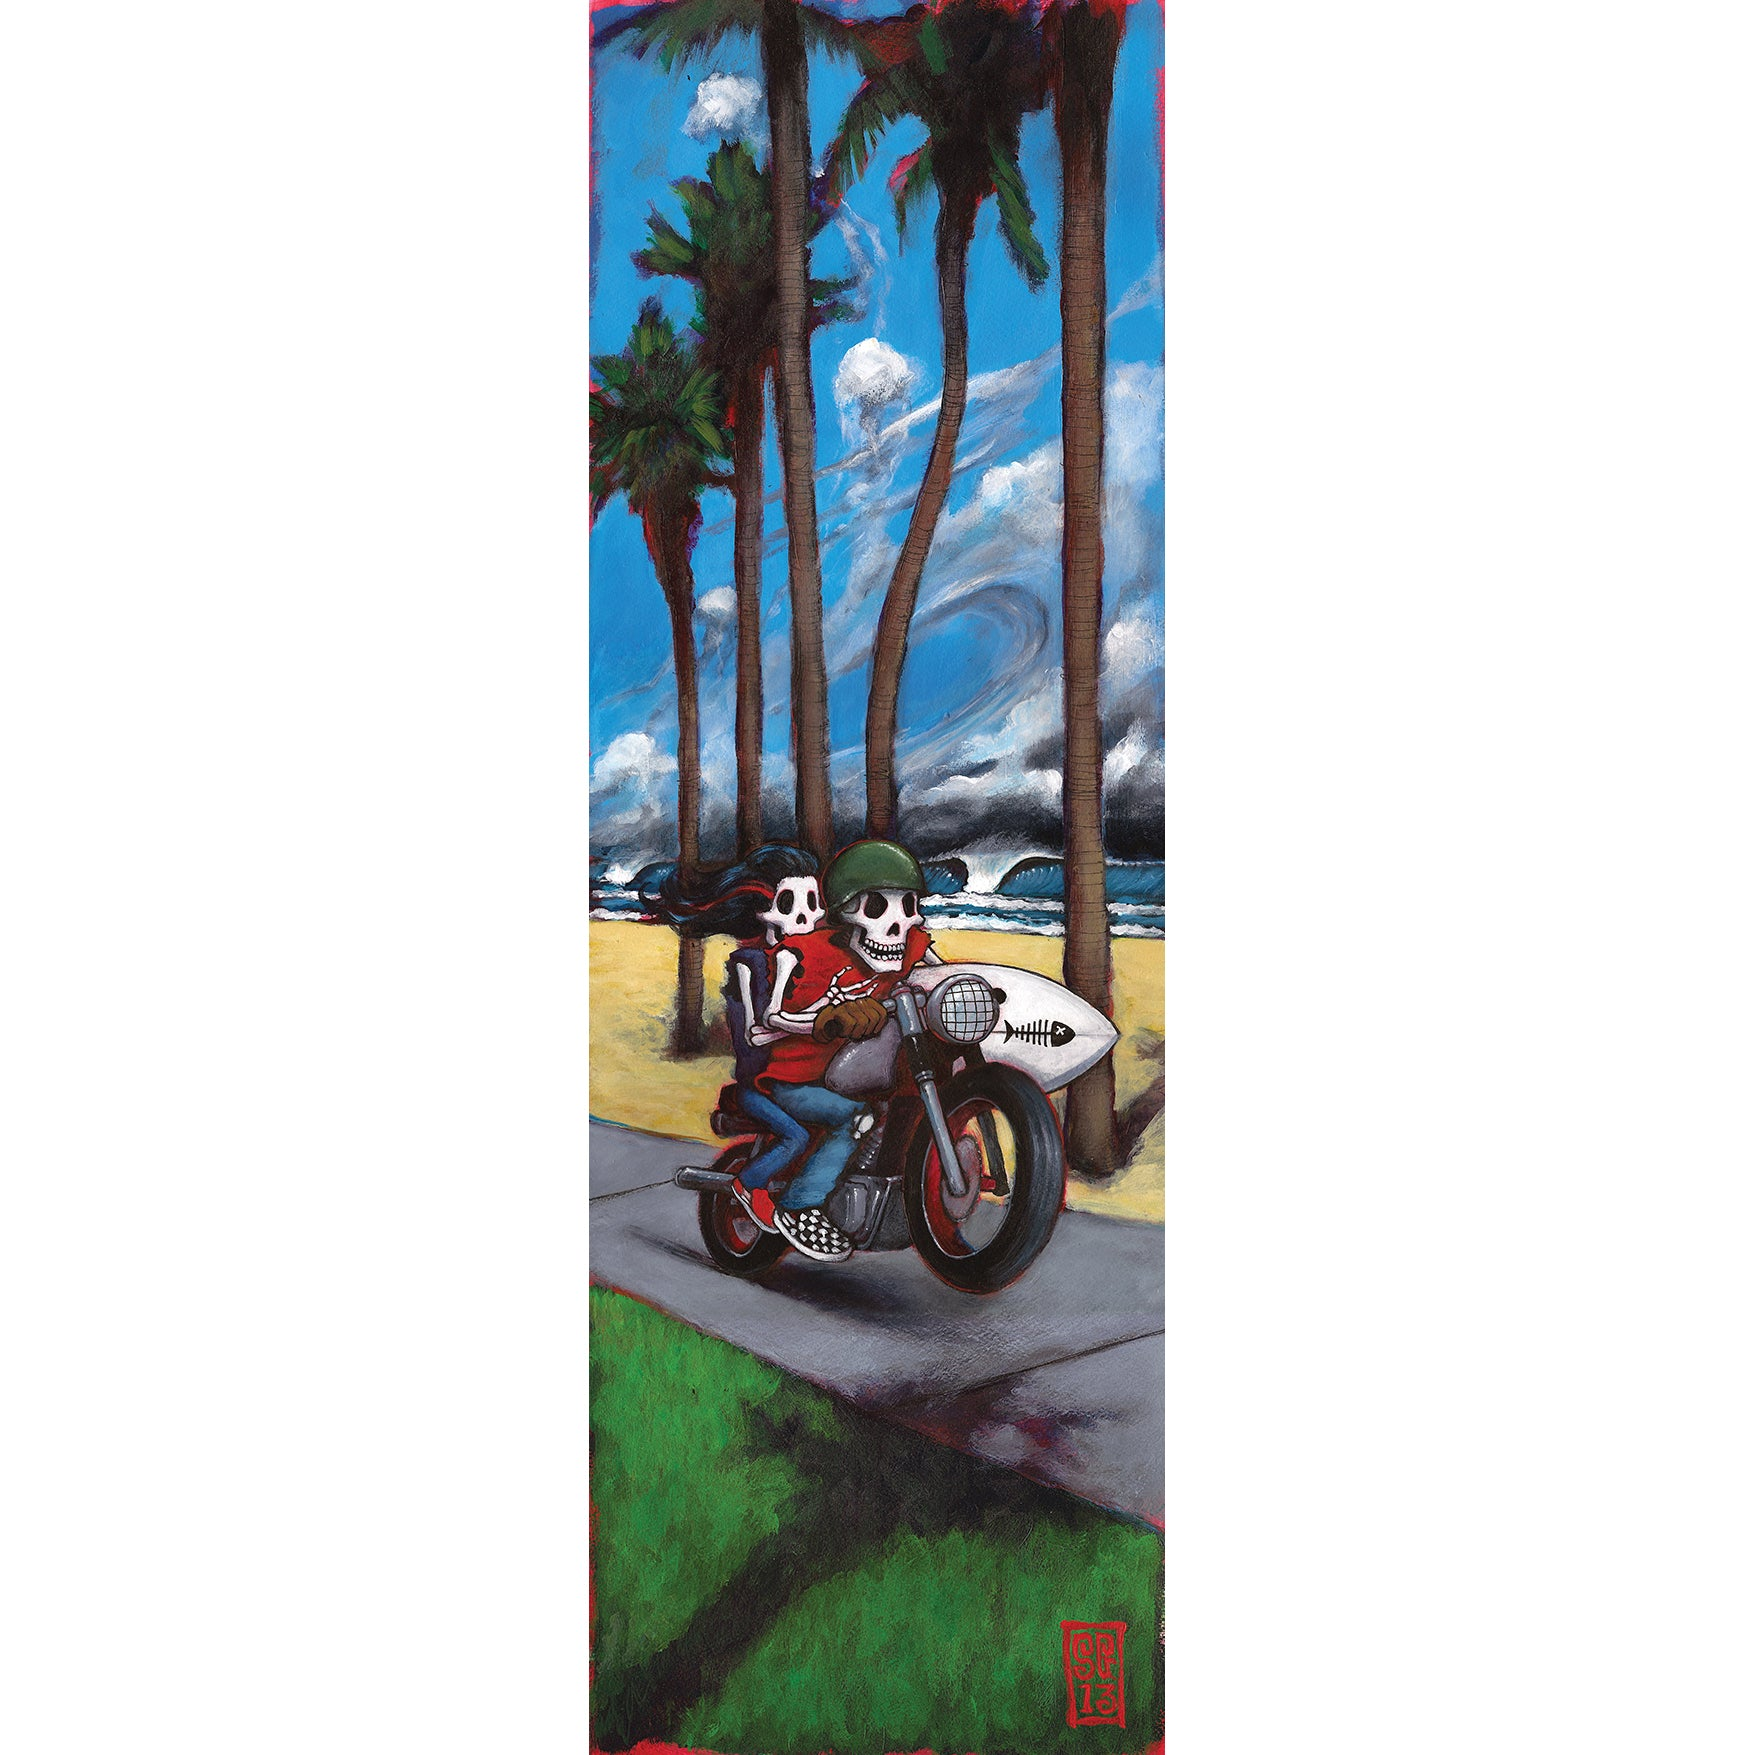 Menace Beach Giclee print - Redeye Laboratories